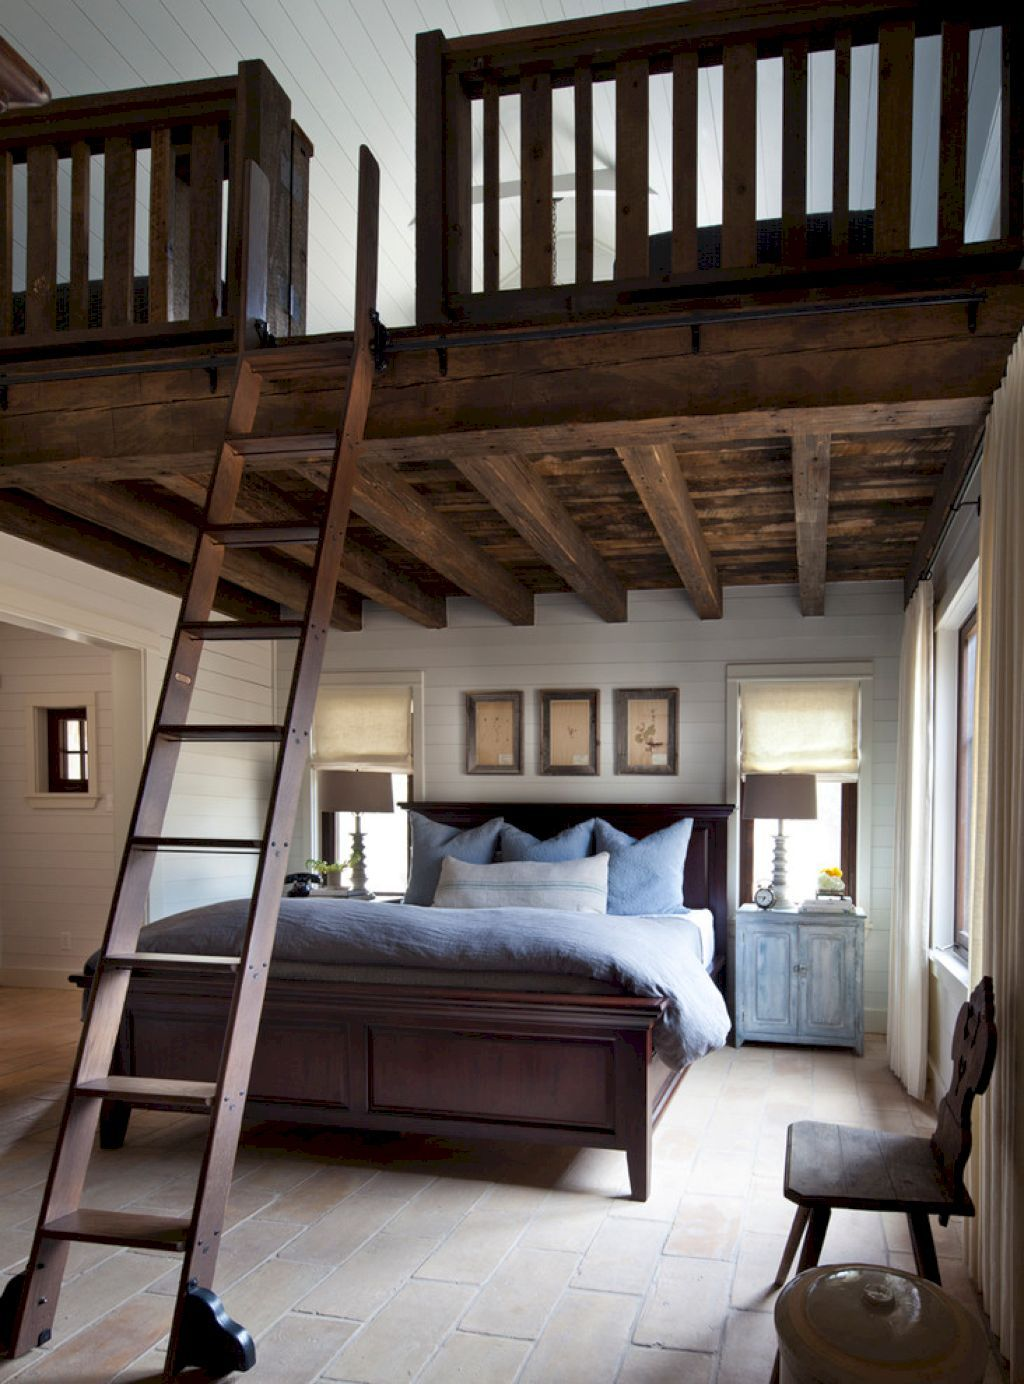 Beauty And Comfy Farmhouse Bedroom Design Ideas Bedrooms - Beautiful rustic interior design 35 pictures of bedrooms